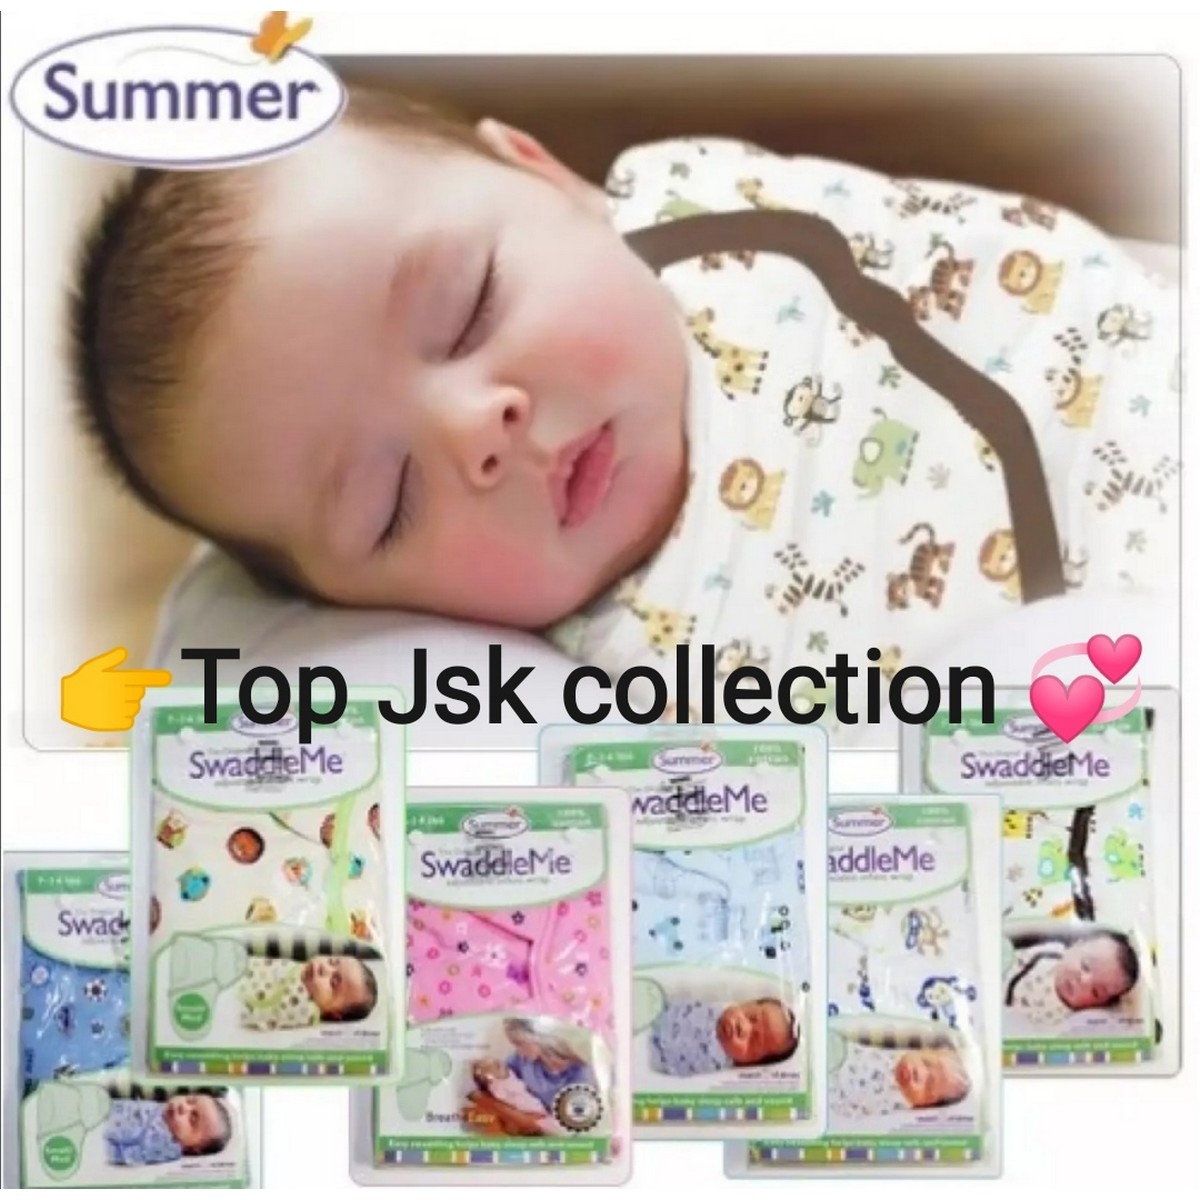 Summer Swaddle Assorted Design 100% Soft Cotton Ultra Comfort Swaddle Wrapping Sheet